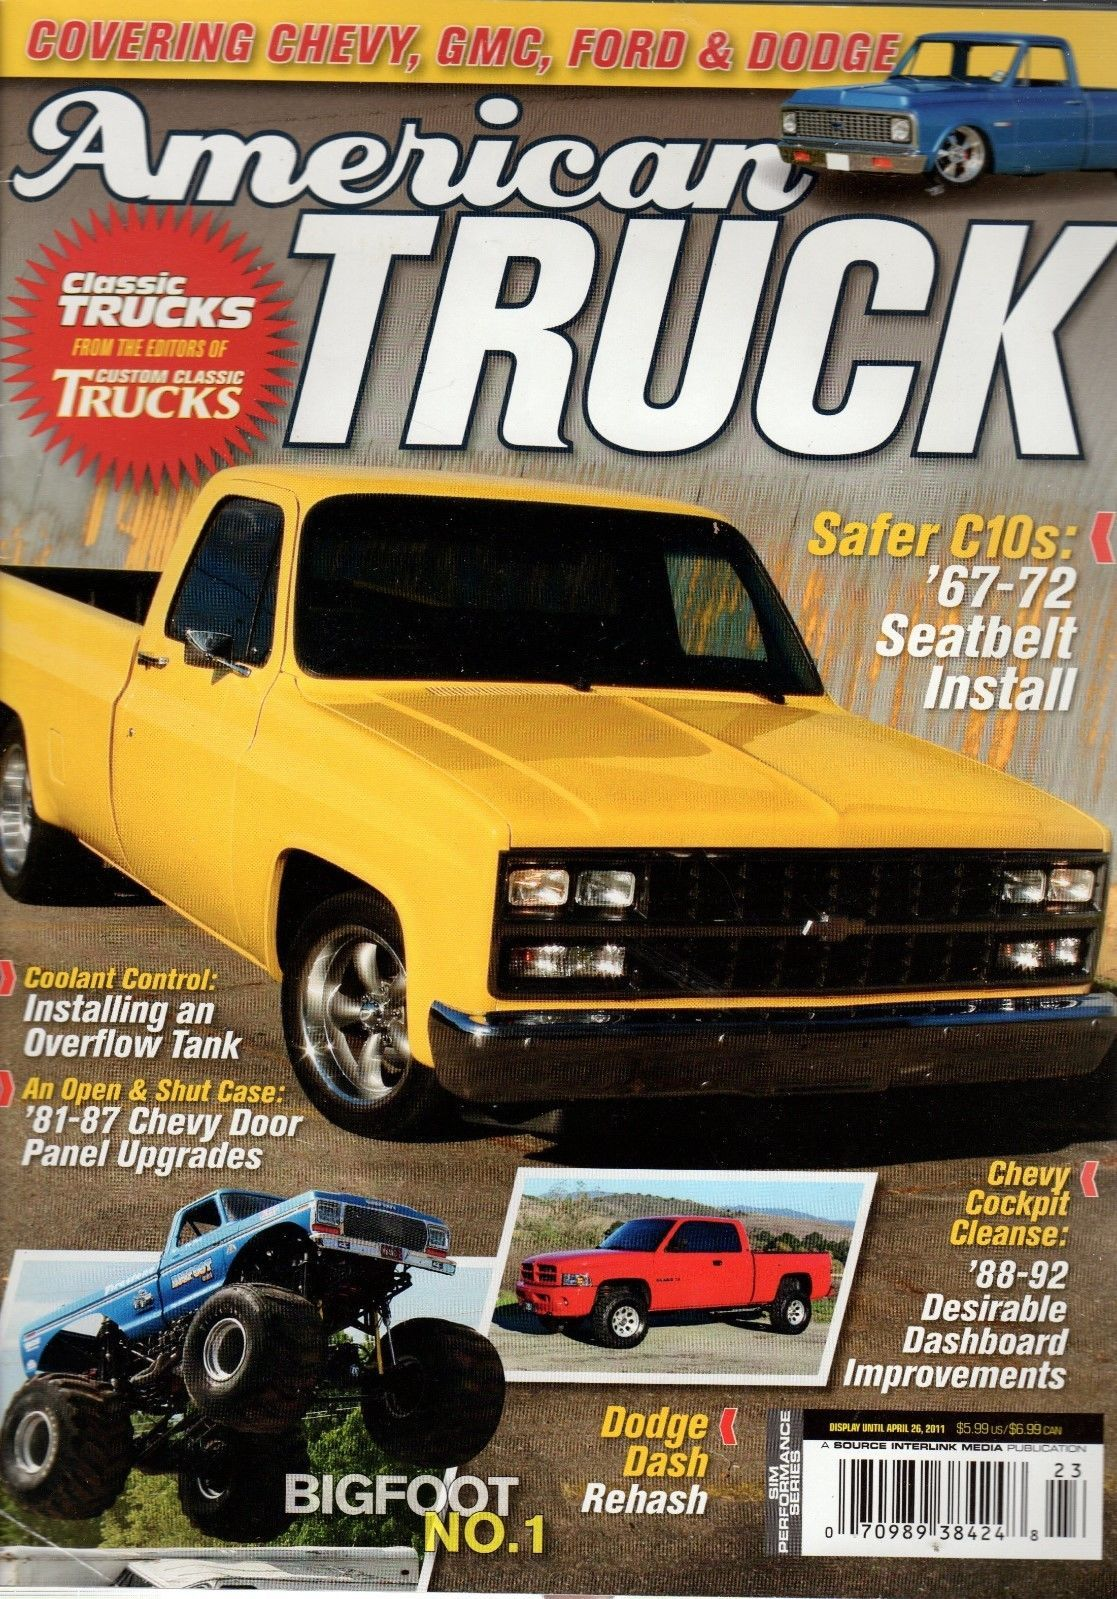 Primary image for American Truck Magazine April 26, 2011 Covering Chevy, GMC, Ford & Dodge